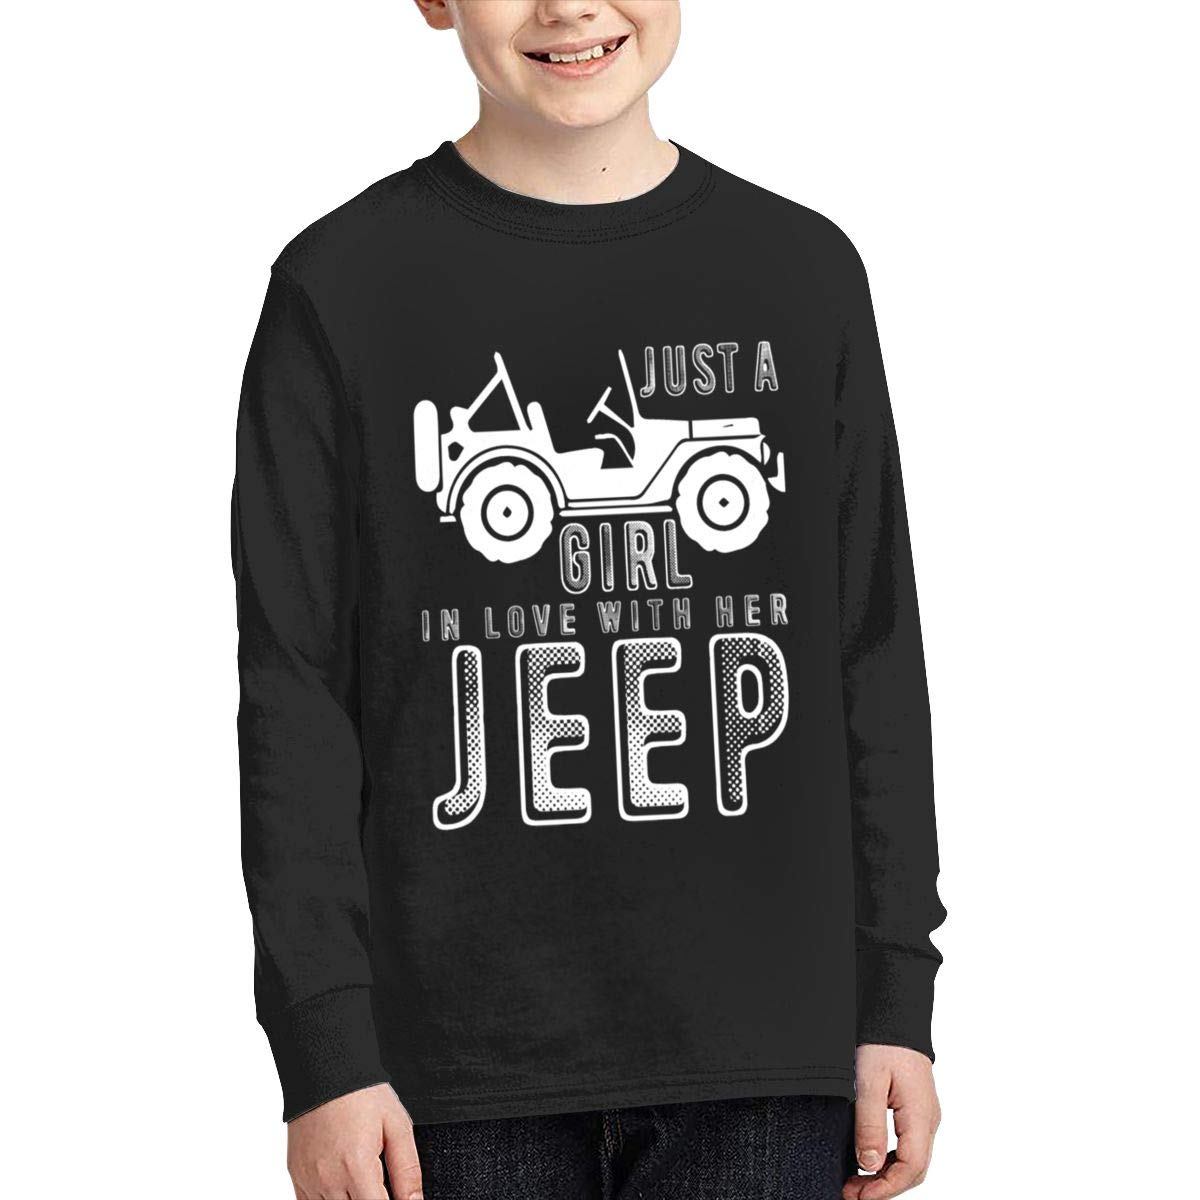 Just A Girl in Love with Her Jeep Long Sleeves Shirts for Girls